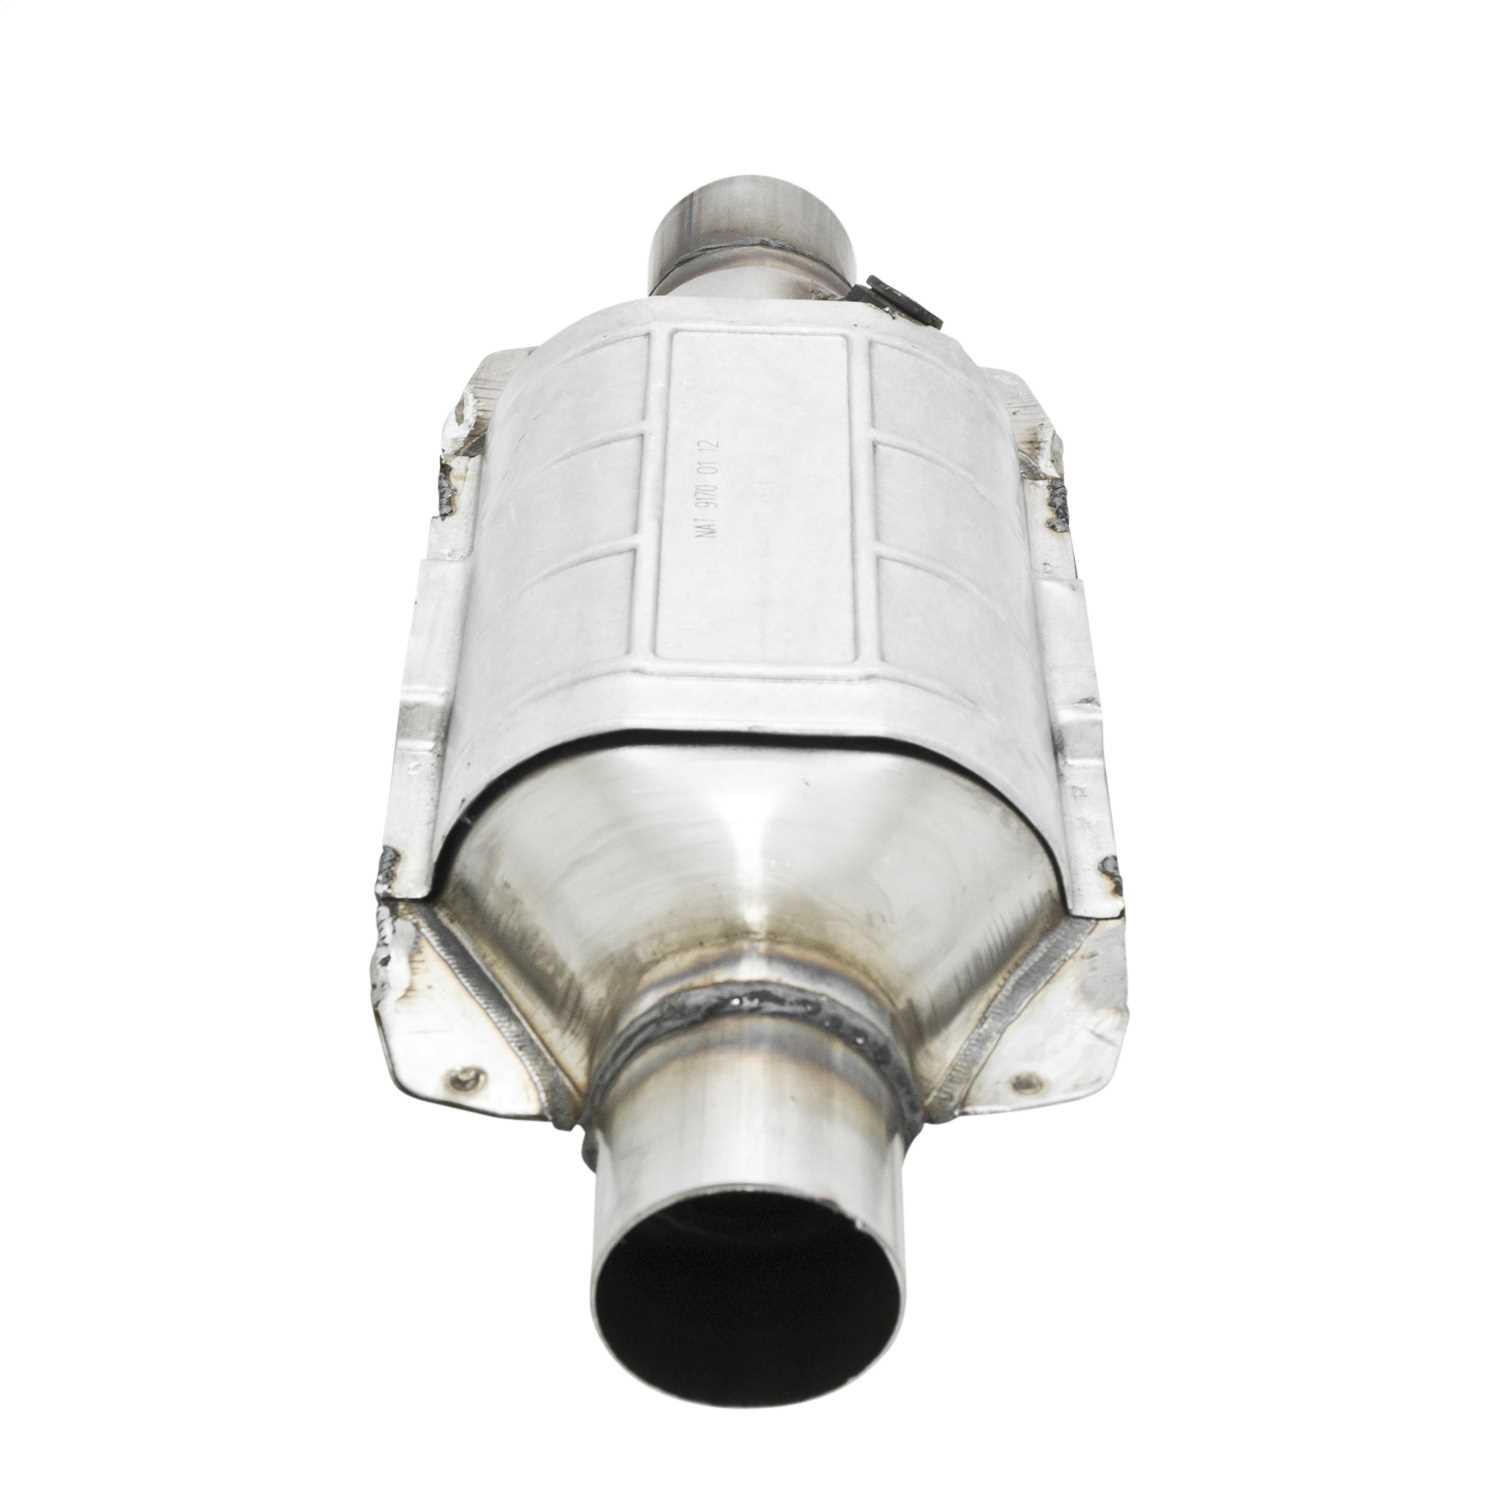 2820224 Flowmaster 49 State Catalytic Converters Universal Catalytic Converter